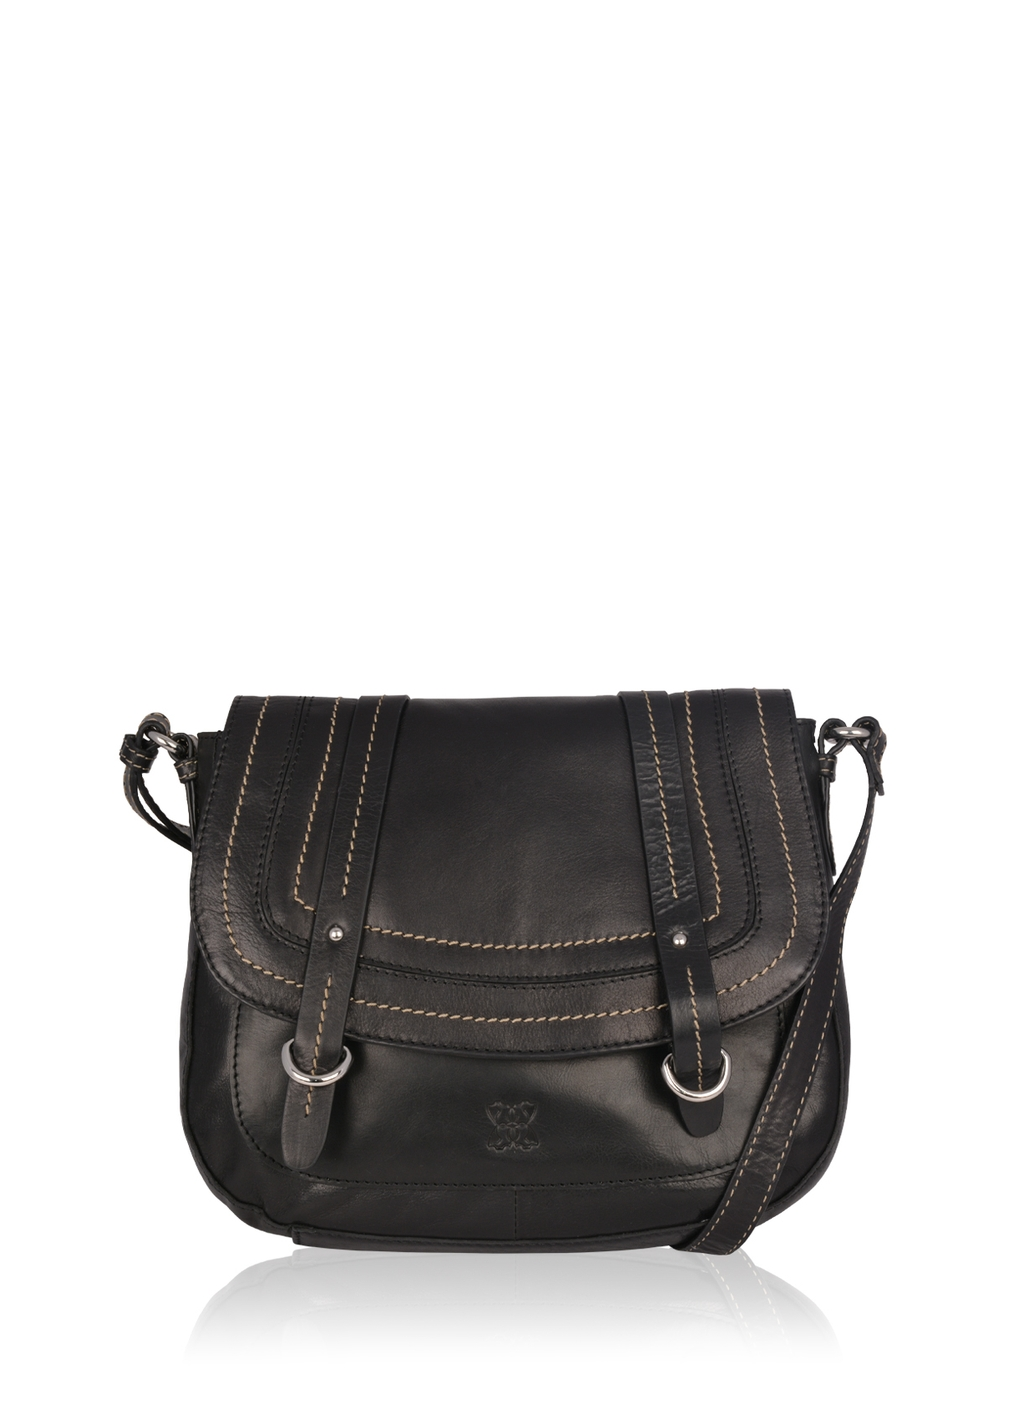 Buttermere Leather Shoulder Bag in Black